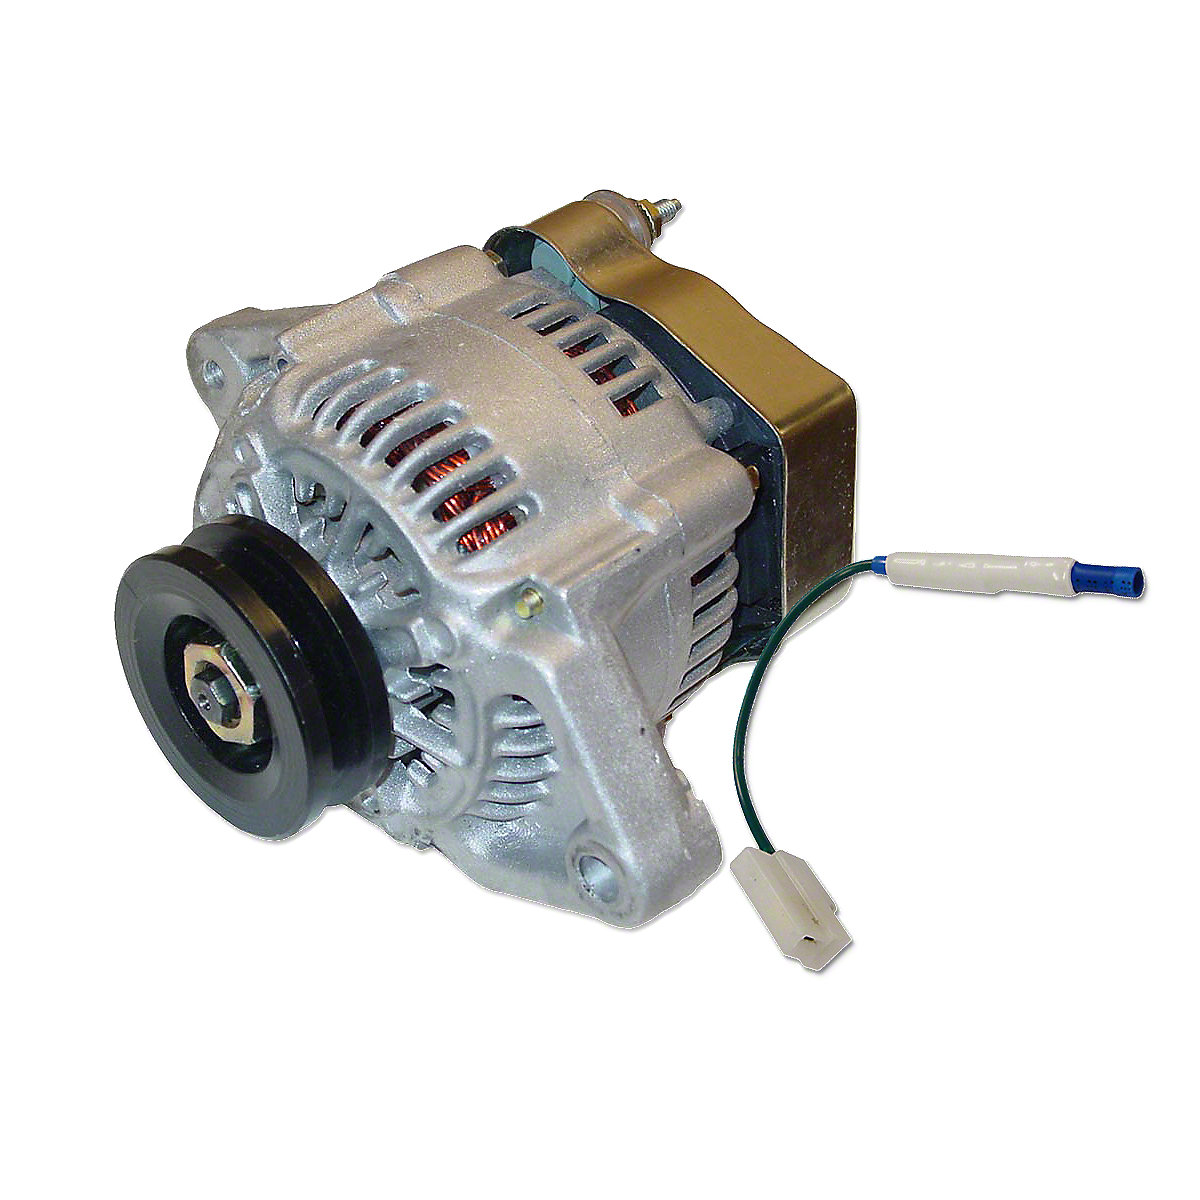 ABC535 Mini 41 Max Amp 12 Volt  Alternator With Pulley And Diode